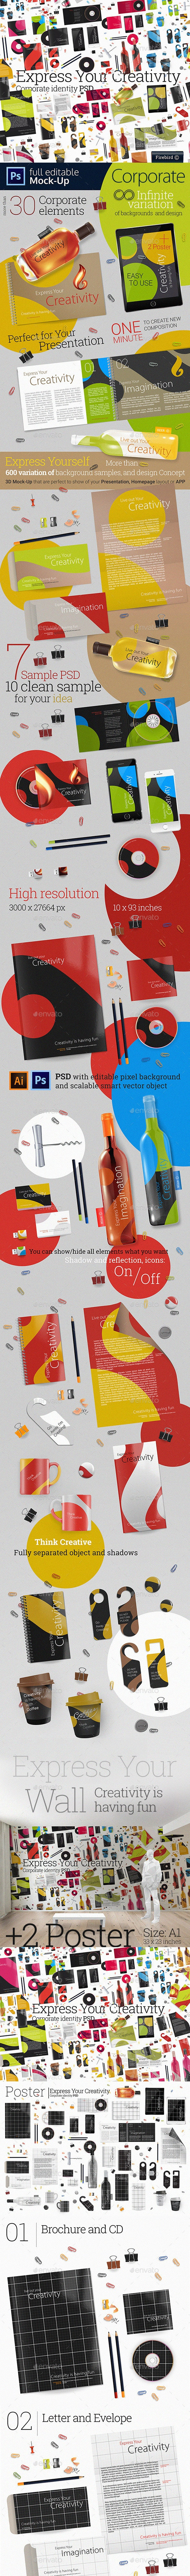 3D Corporate +3 0 Elements - Stationery Print